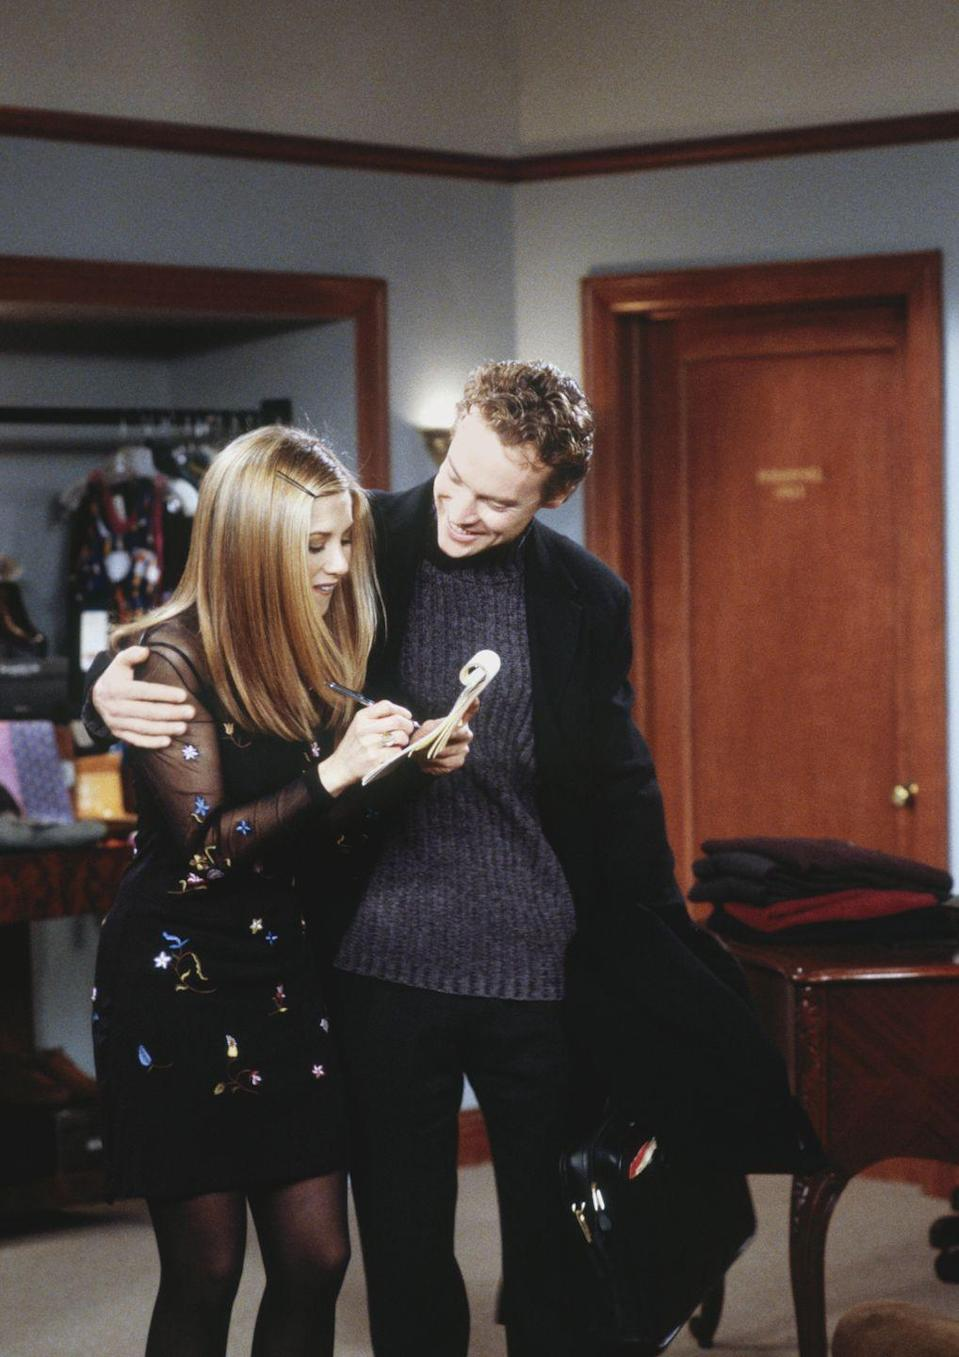 """<p>Tate Donovan dated Jennifer Aniston in real life throughout the first few seasons of the hit show, but when the actor appeared in season 4 as a reoccurring guest star (and Rachel Green's crush) the couple had already called off their engagement and parted ways. """"It was horrible...I remember just getting back to my dressing room and just weeping,"""" Tate told <a href=""""https://www.youtube.com/watch?v=gpFKoZ4fasg"""" rel=""""nofollow noopener"""" target=""""_blank"""" data-ylk=""""slk:HuffPost Live"""" class=""""link rapid-noclick-resp"""">HuffPost Live</a>.</p>"""